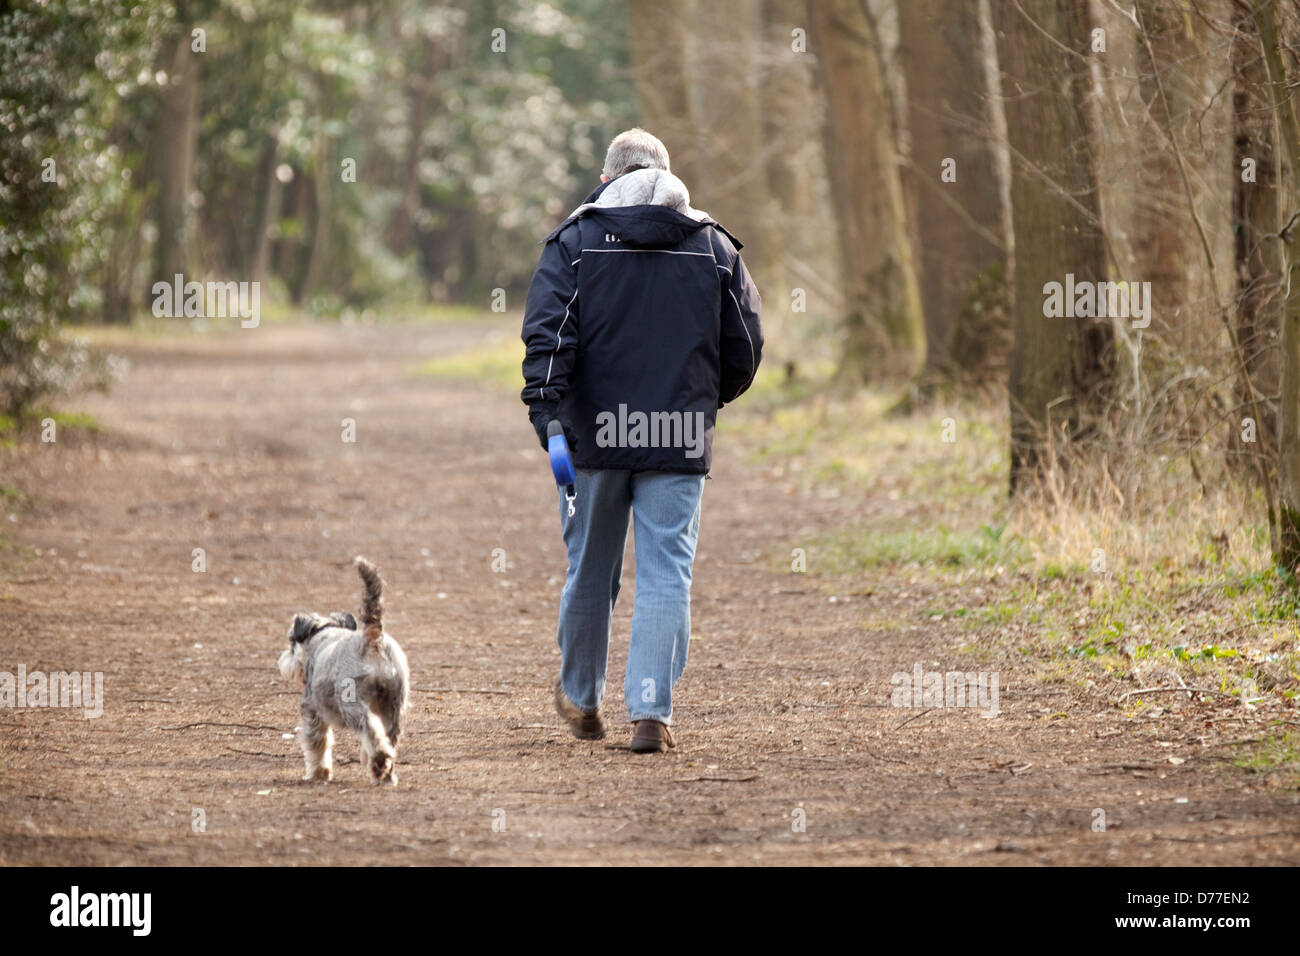 Man Walking Dog : One man walking his dog in woods on a path from the back